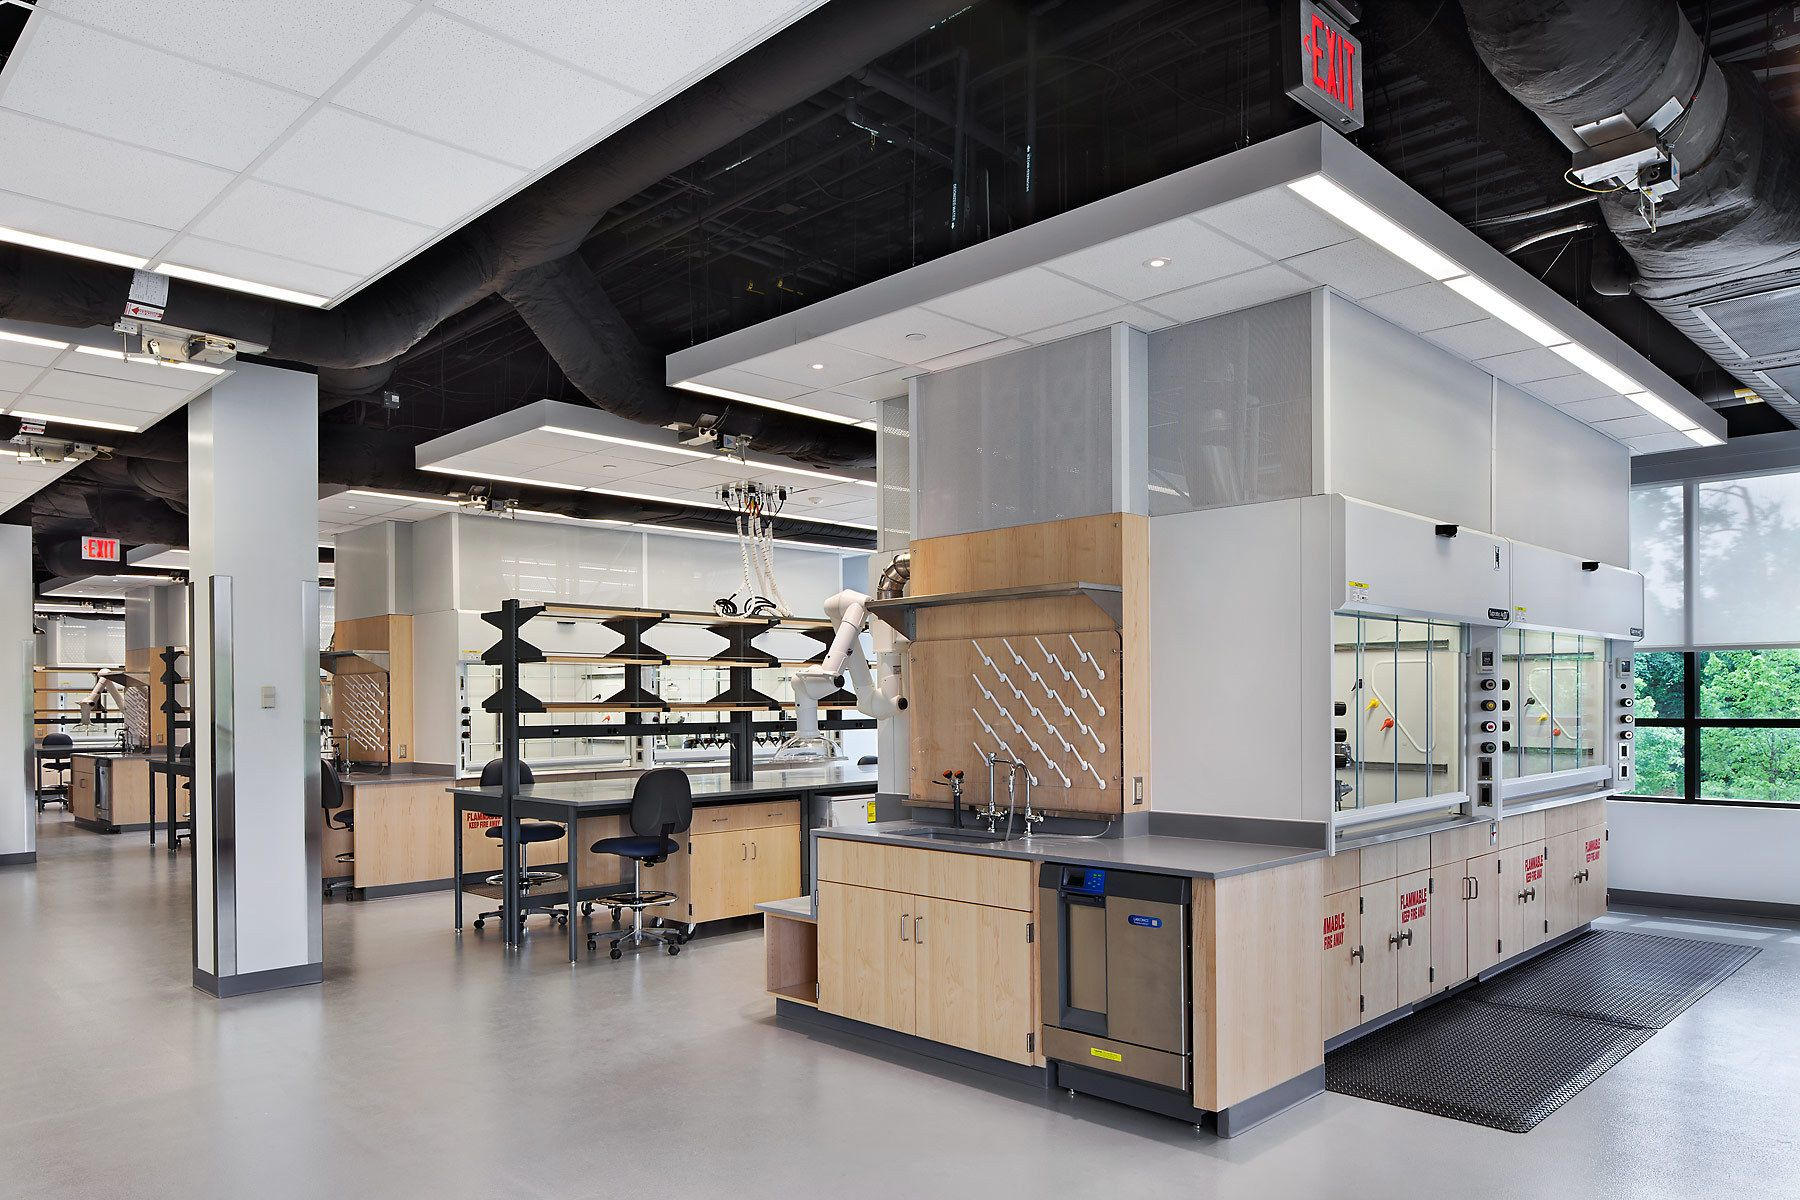 Vanderbilt Center for Neuroscience Drug Discovery Laboratory | Cool Springs Life Science Center | Franklin, TNArchitect - Blair + Mui Dowd Architects, PCGeneral Contractor - Brasfield & Gorrie